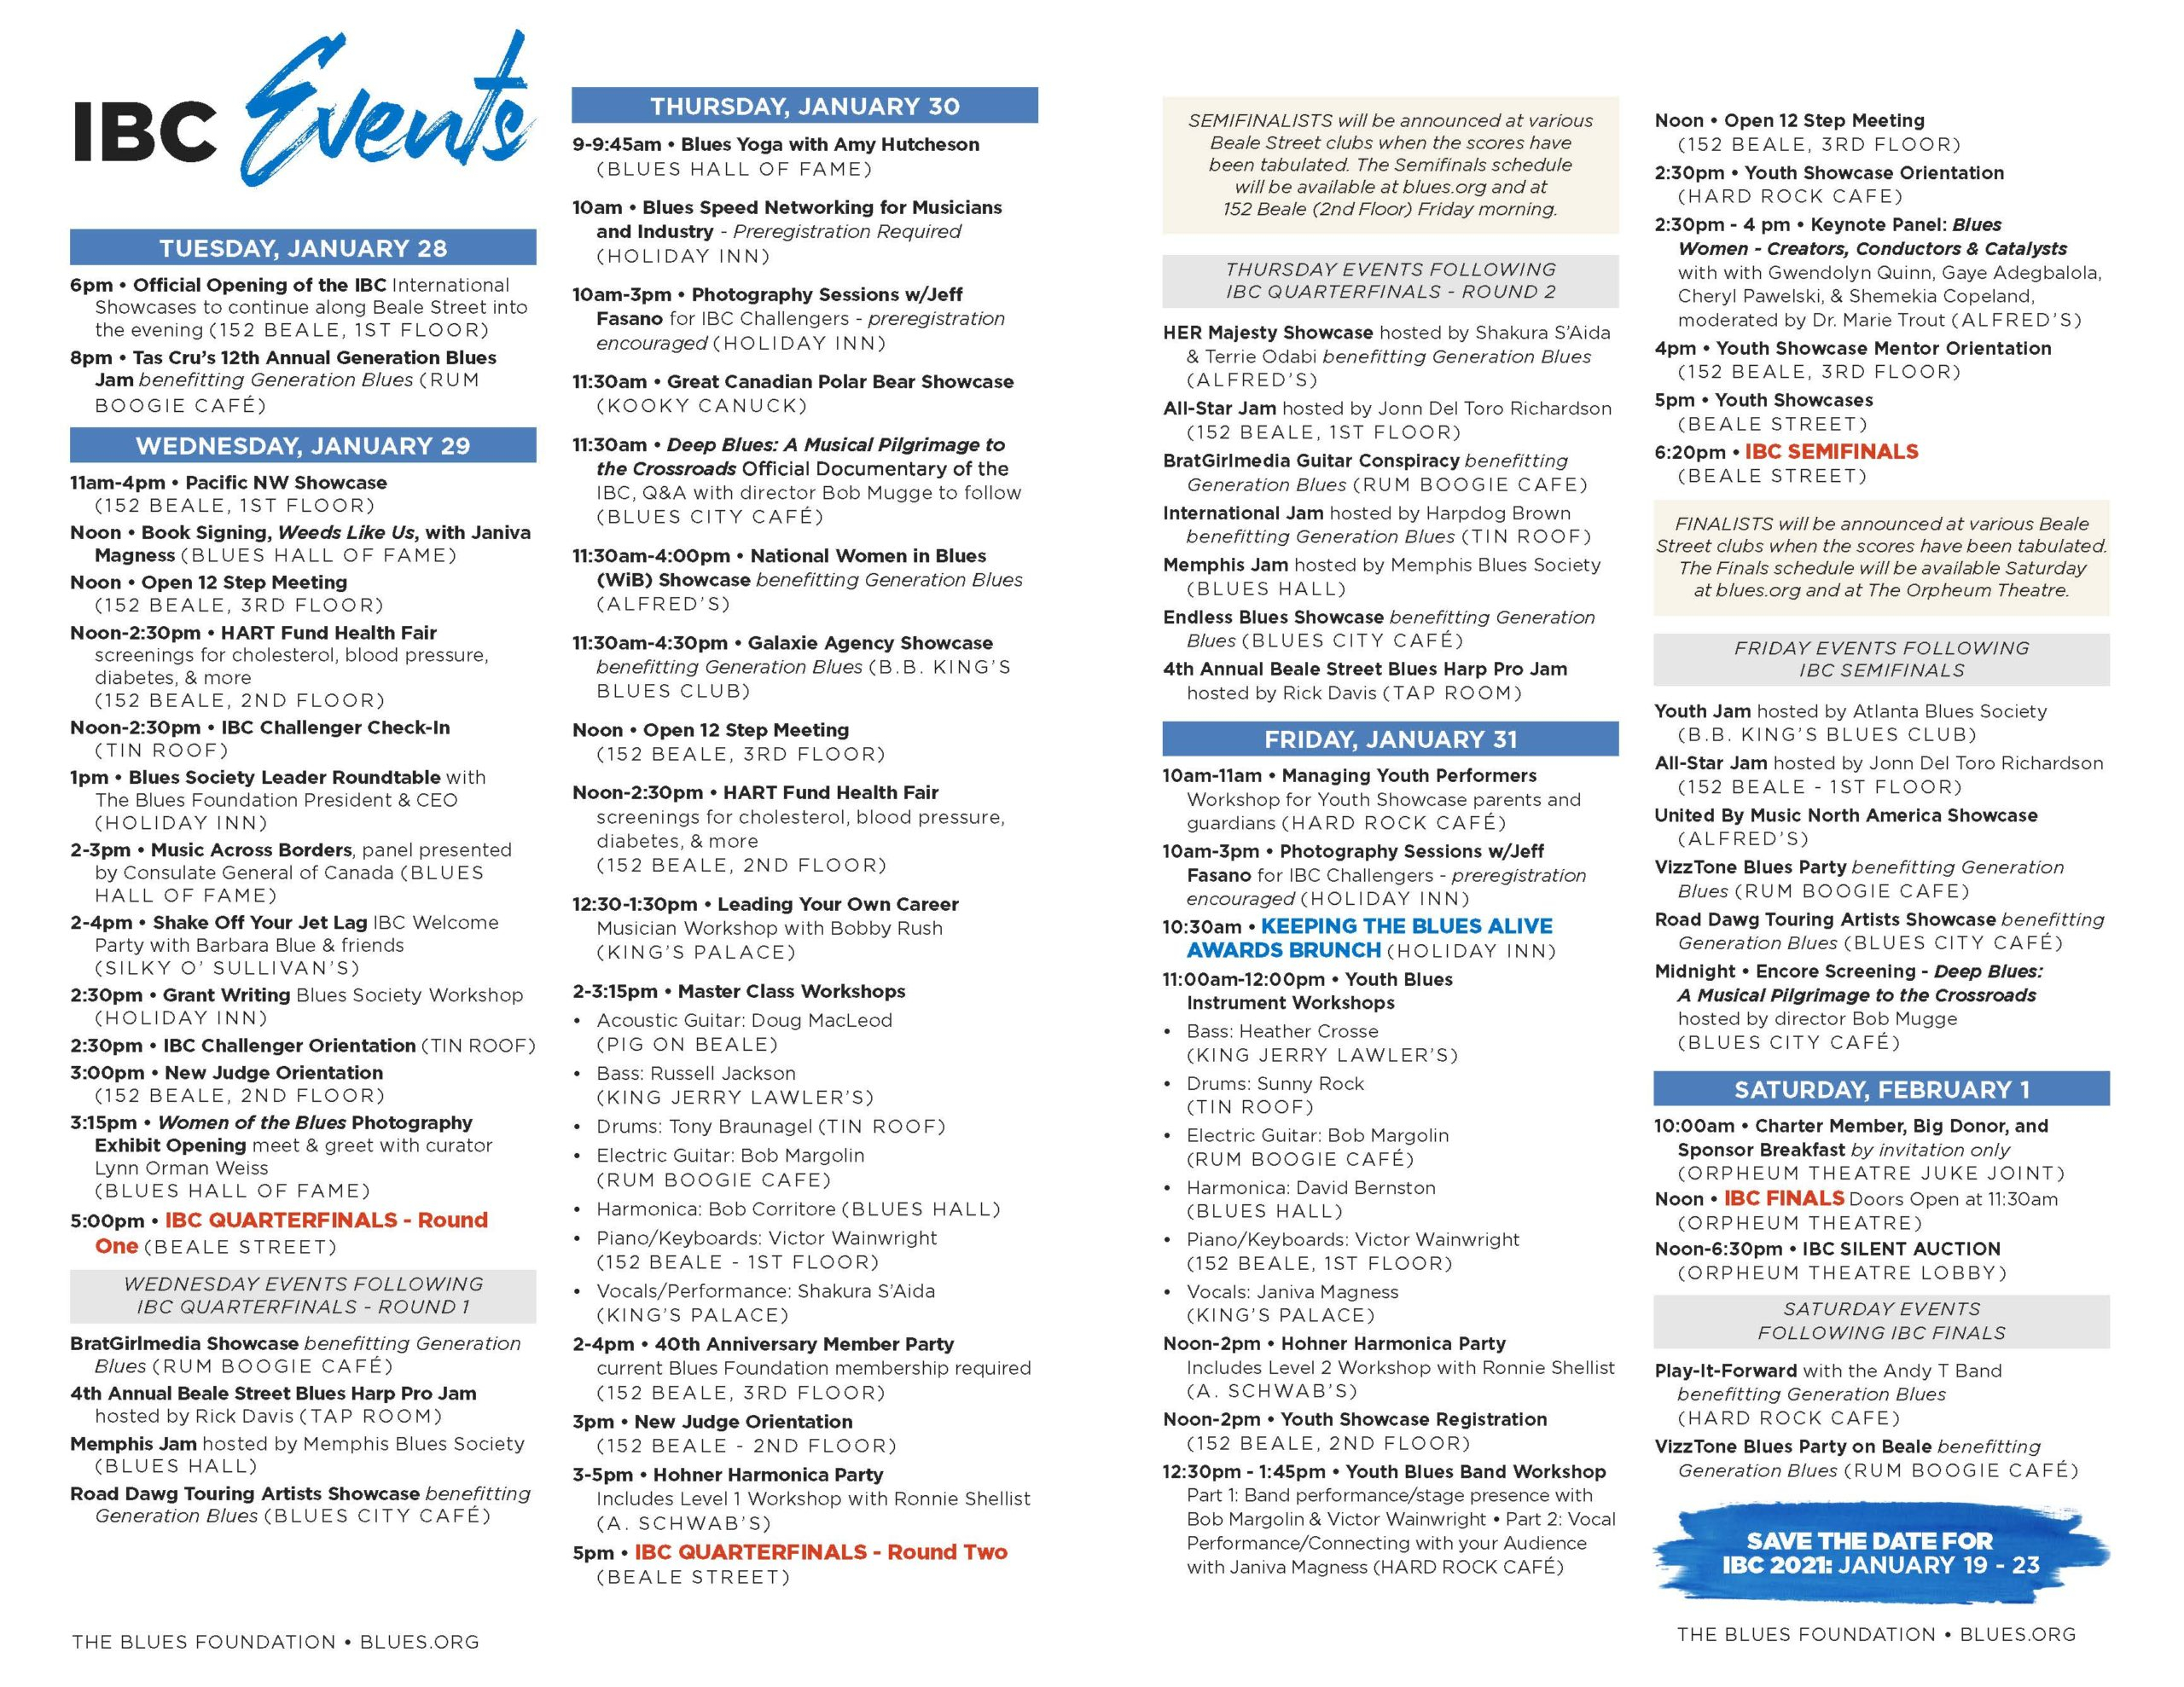 Ibc Event Program - Blues Foundation For Blues Alley Schedule 2021